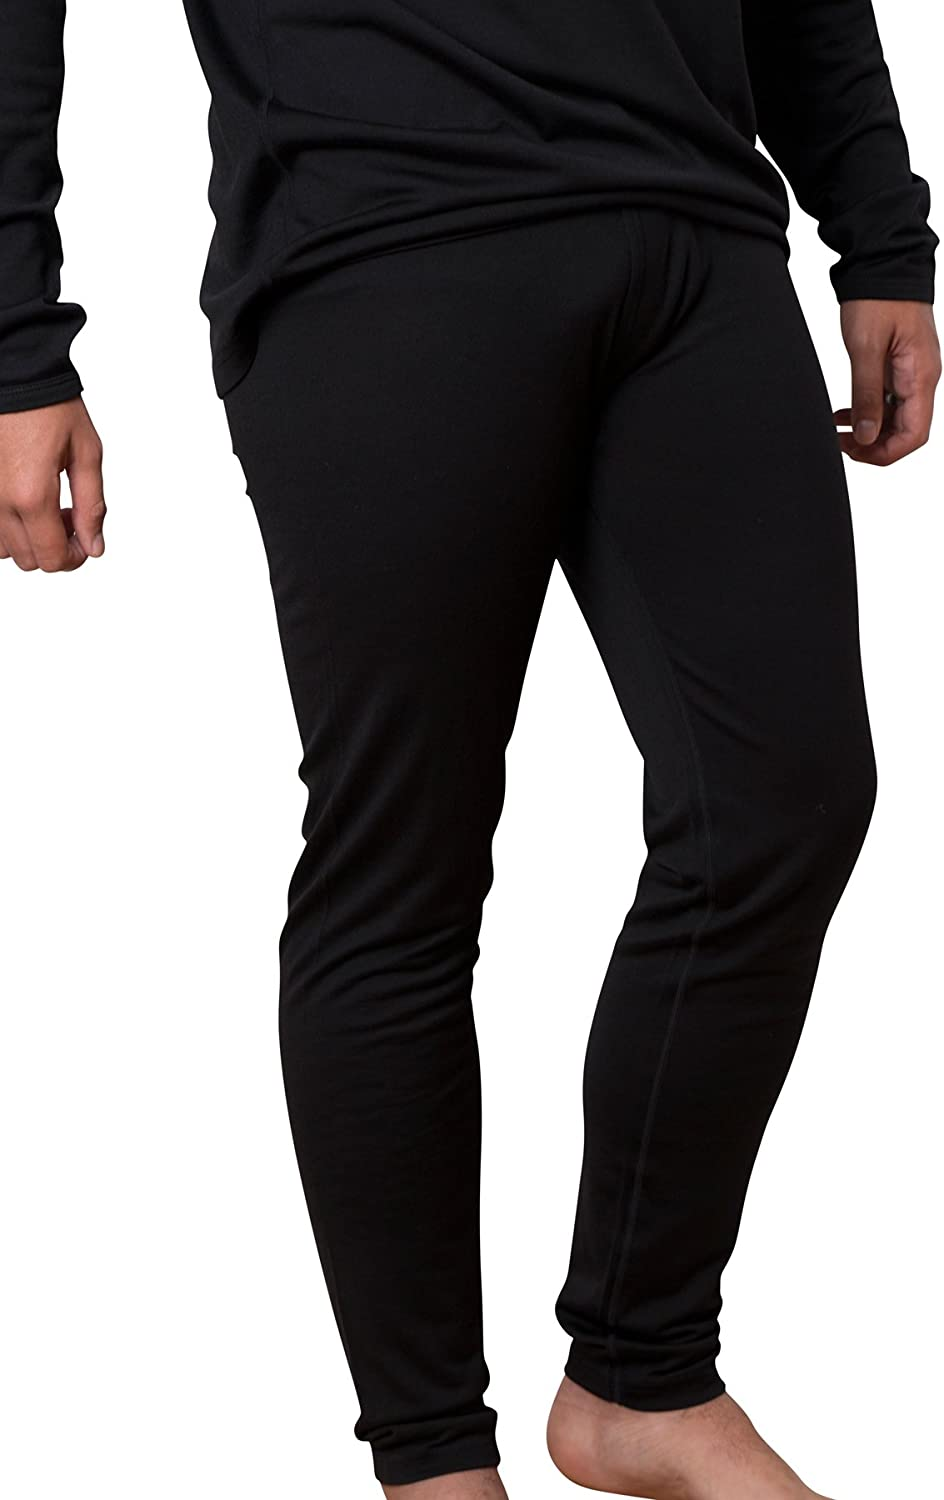 Cold Snap Year-end gift New York Mall Merino Slim Pant GSM Midweight Woo 210 100%